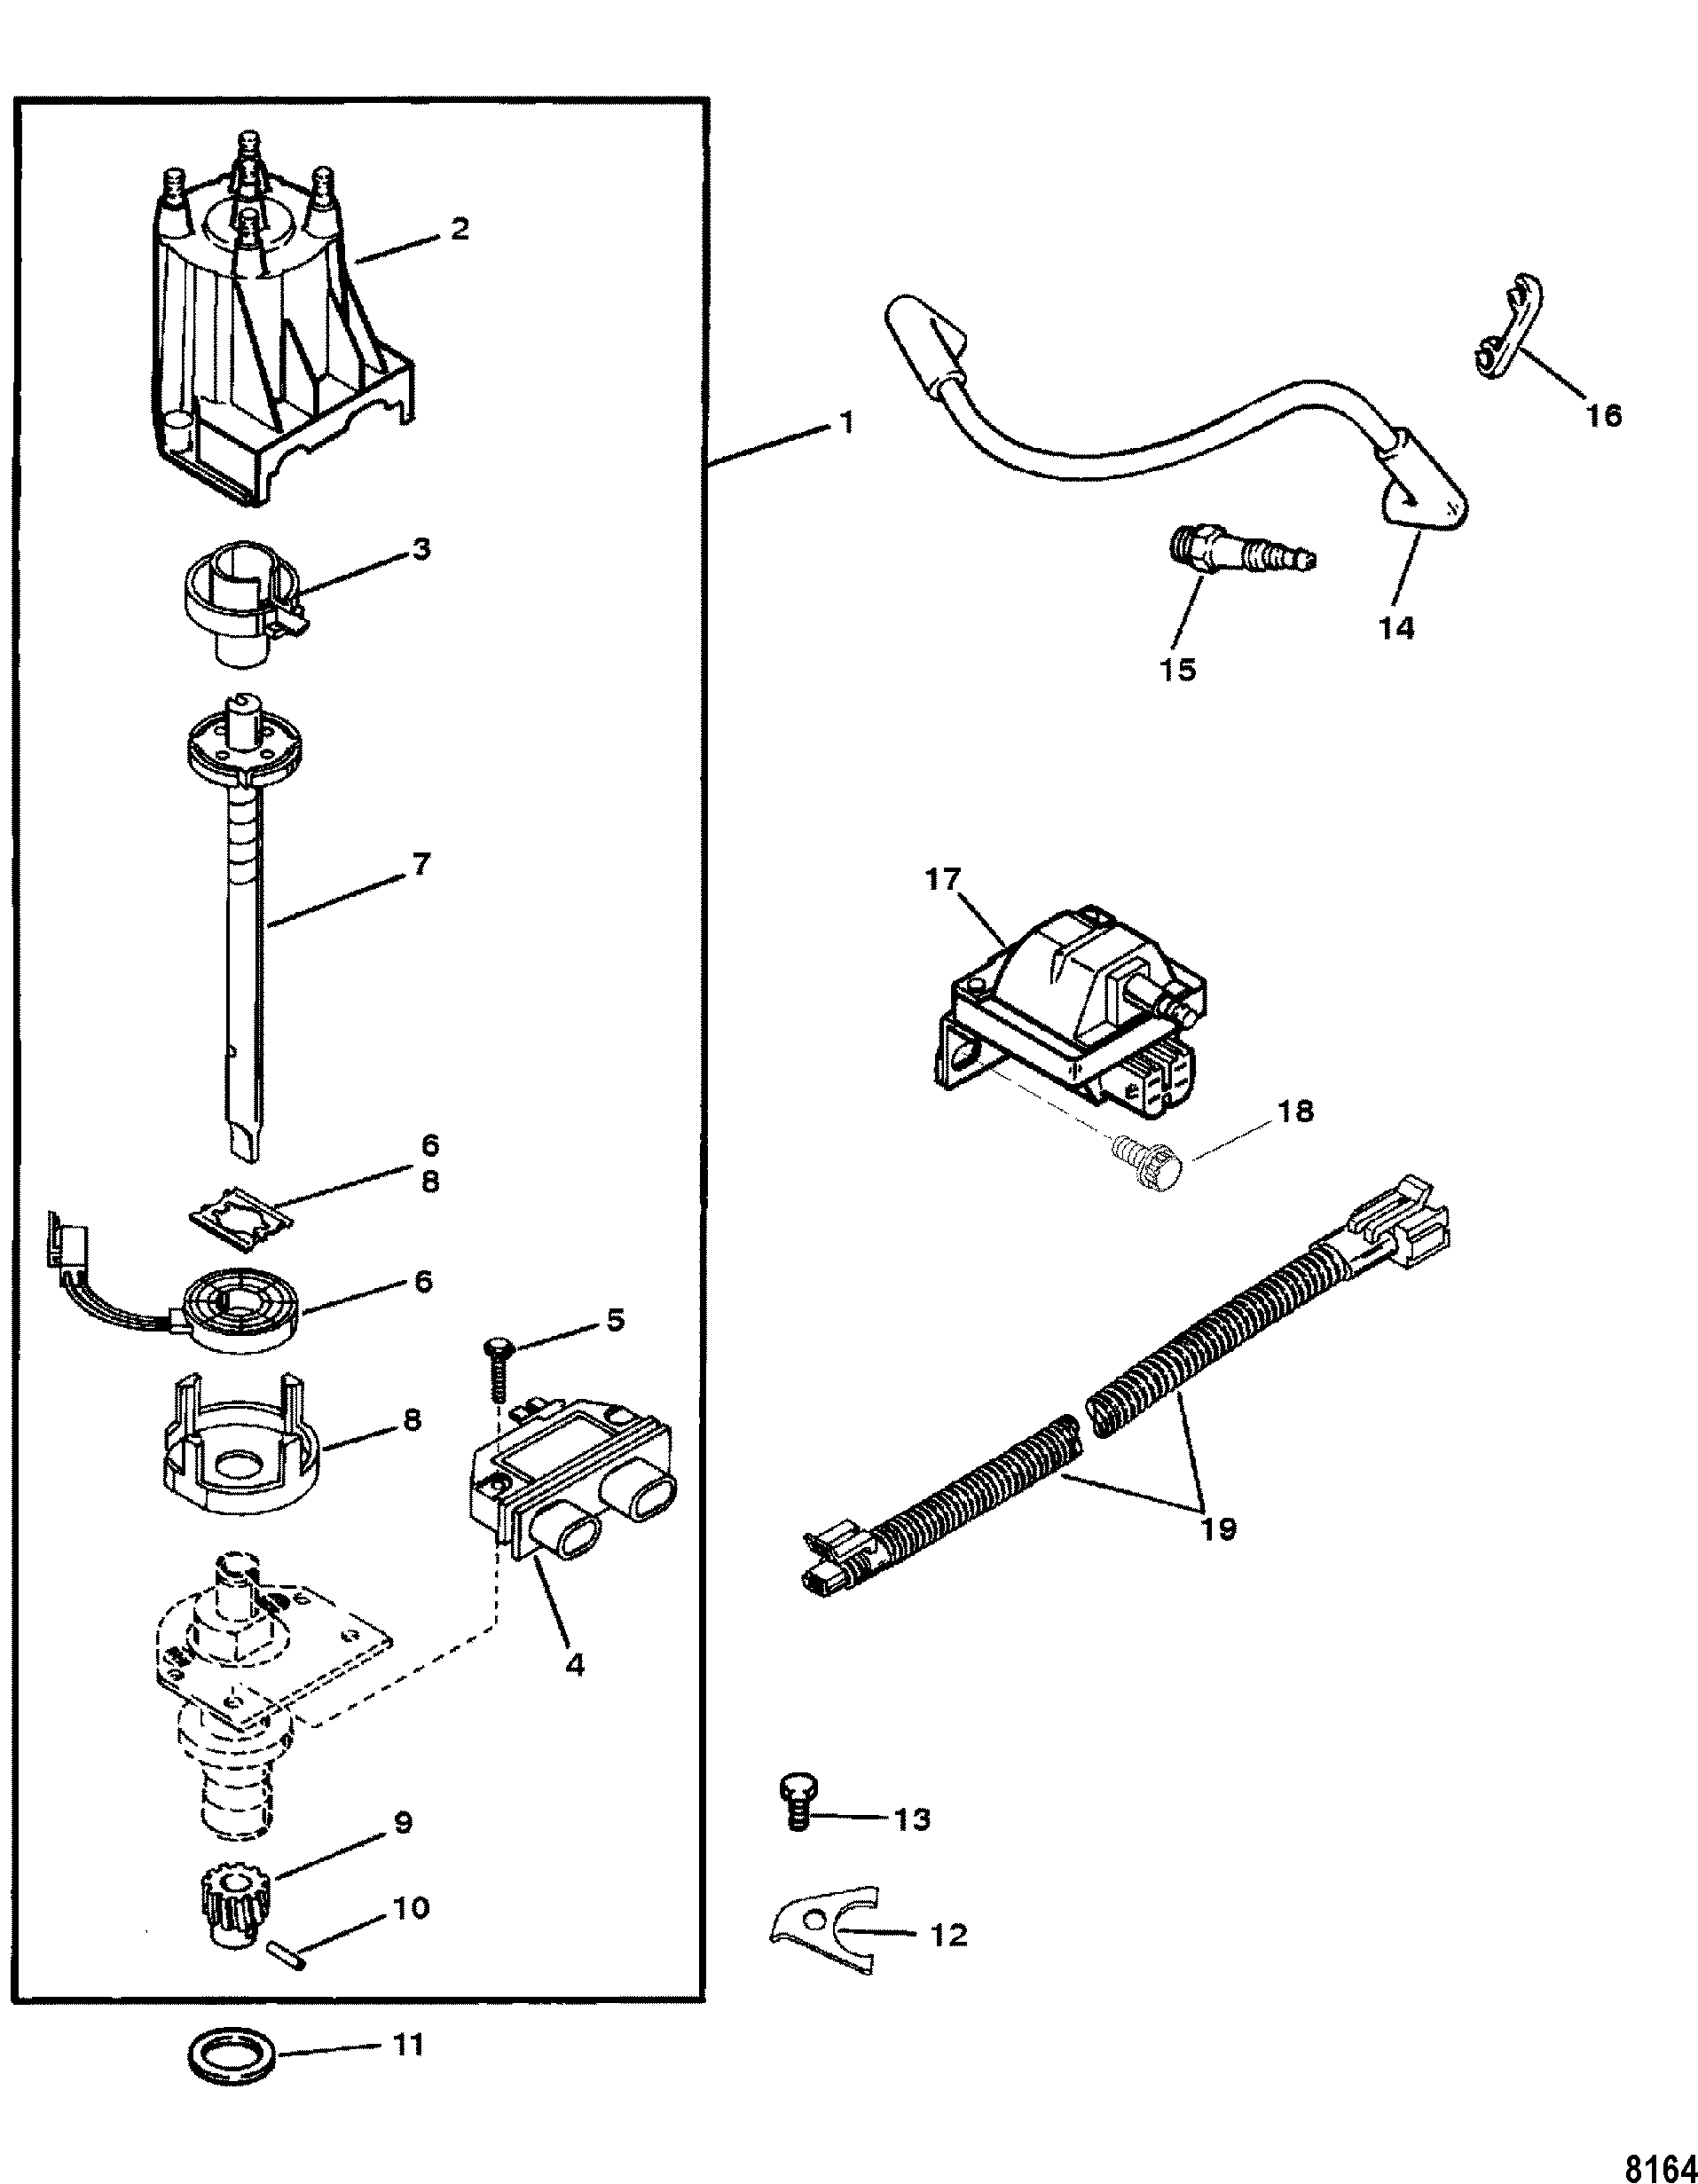 Ignition Wiring Diagram Gm Marine 181 Great Installation Of Painless Column Wiper Mercury Mercruiser 3 0l I L4 1a020544 Up Rh Vansoutboardparts Com Universal Switch Steering